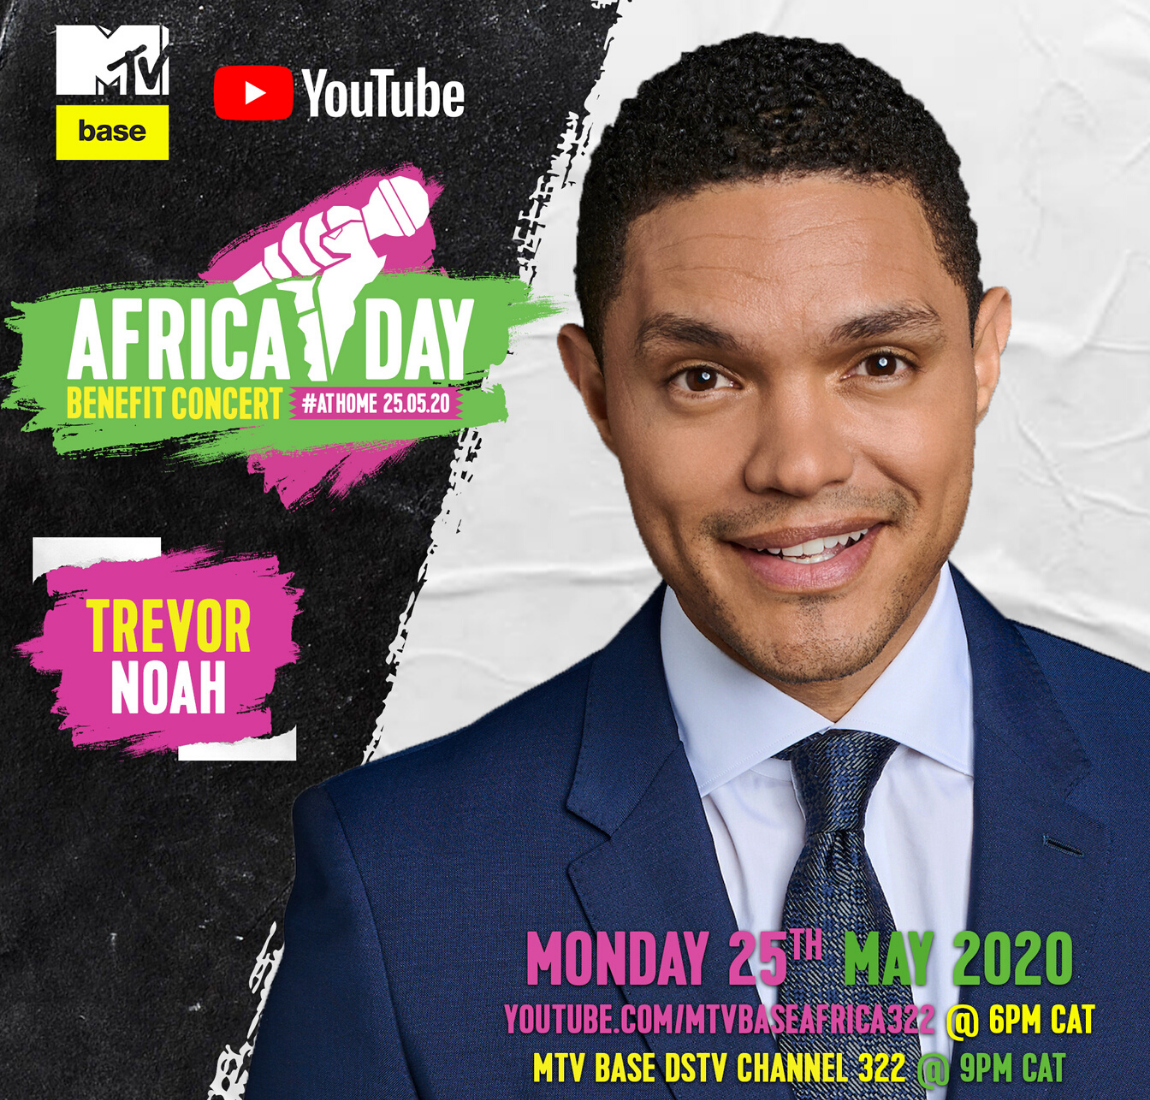 Trevor Noah at the Africa Day Benefit Concert